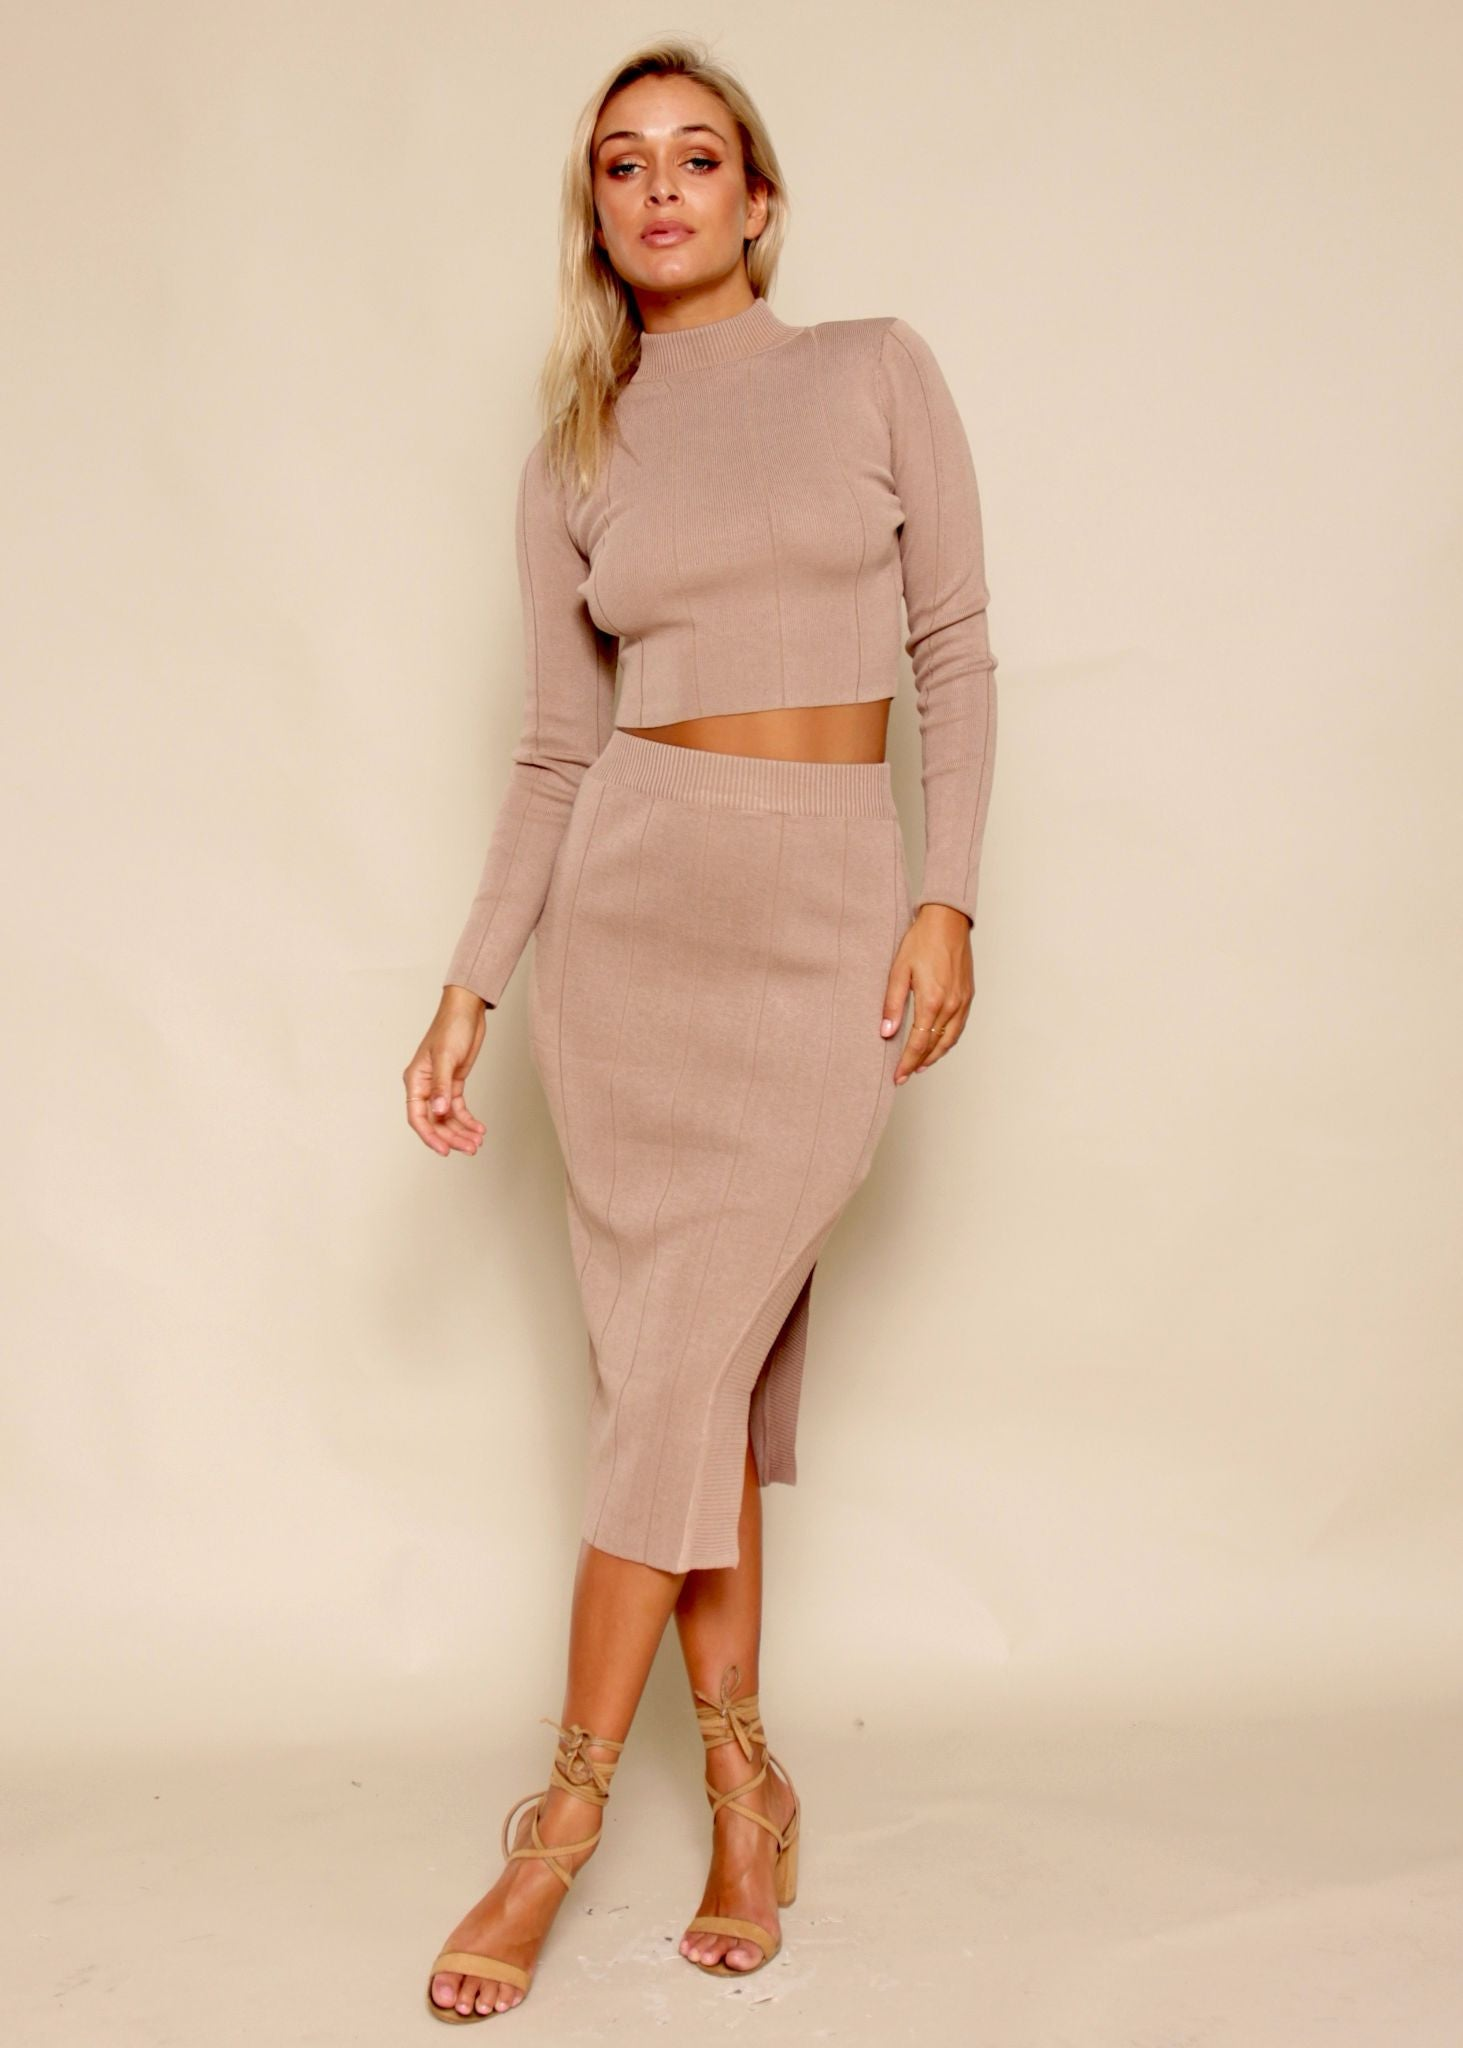 Sweet Disposition 2 Piece Set - Nude